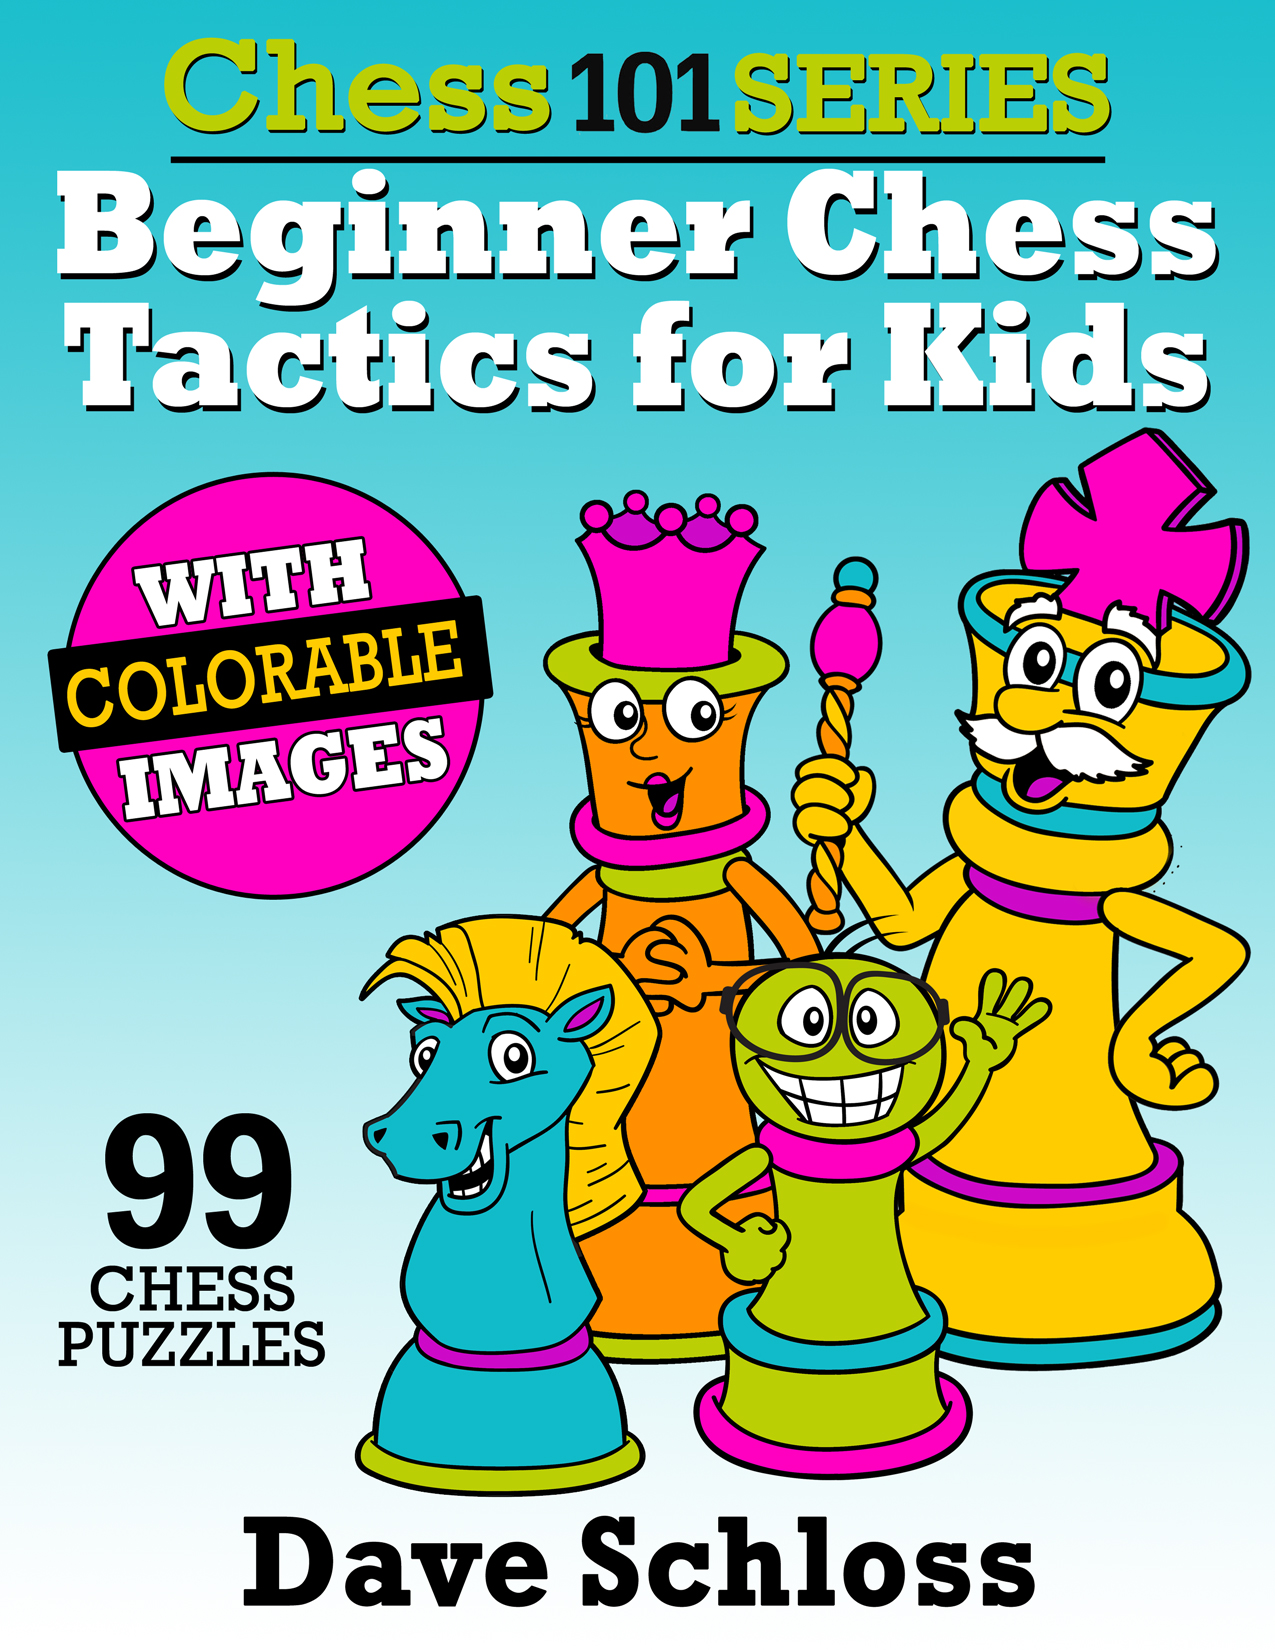 99 one-move chess tactics for kids rated at 1000 and below.